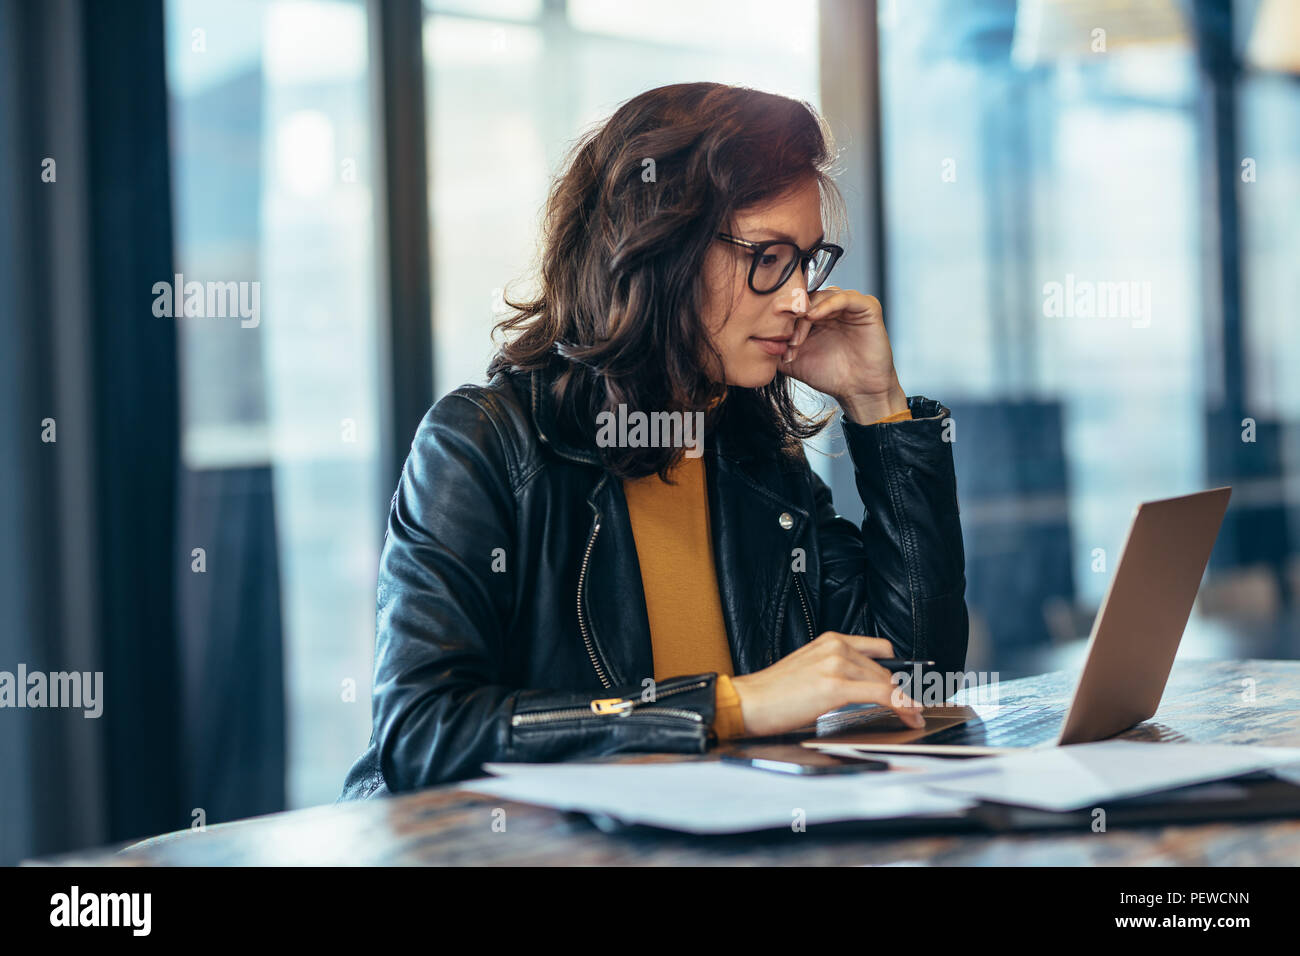 Portrait of woman working on laptop computer in office. Asian business woman in casuals working at office. - Stock Image